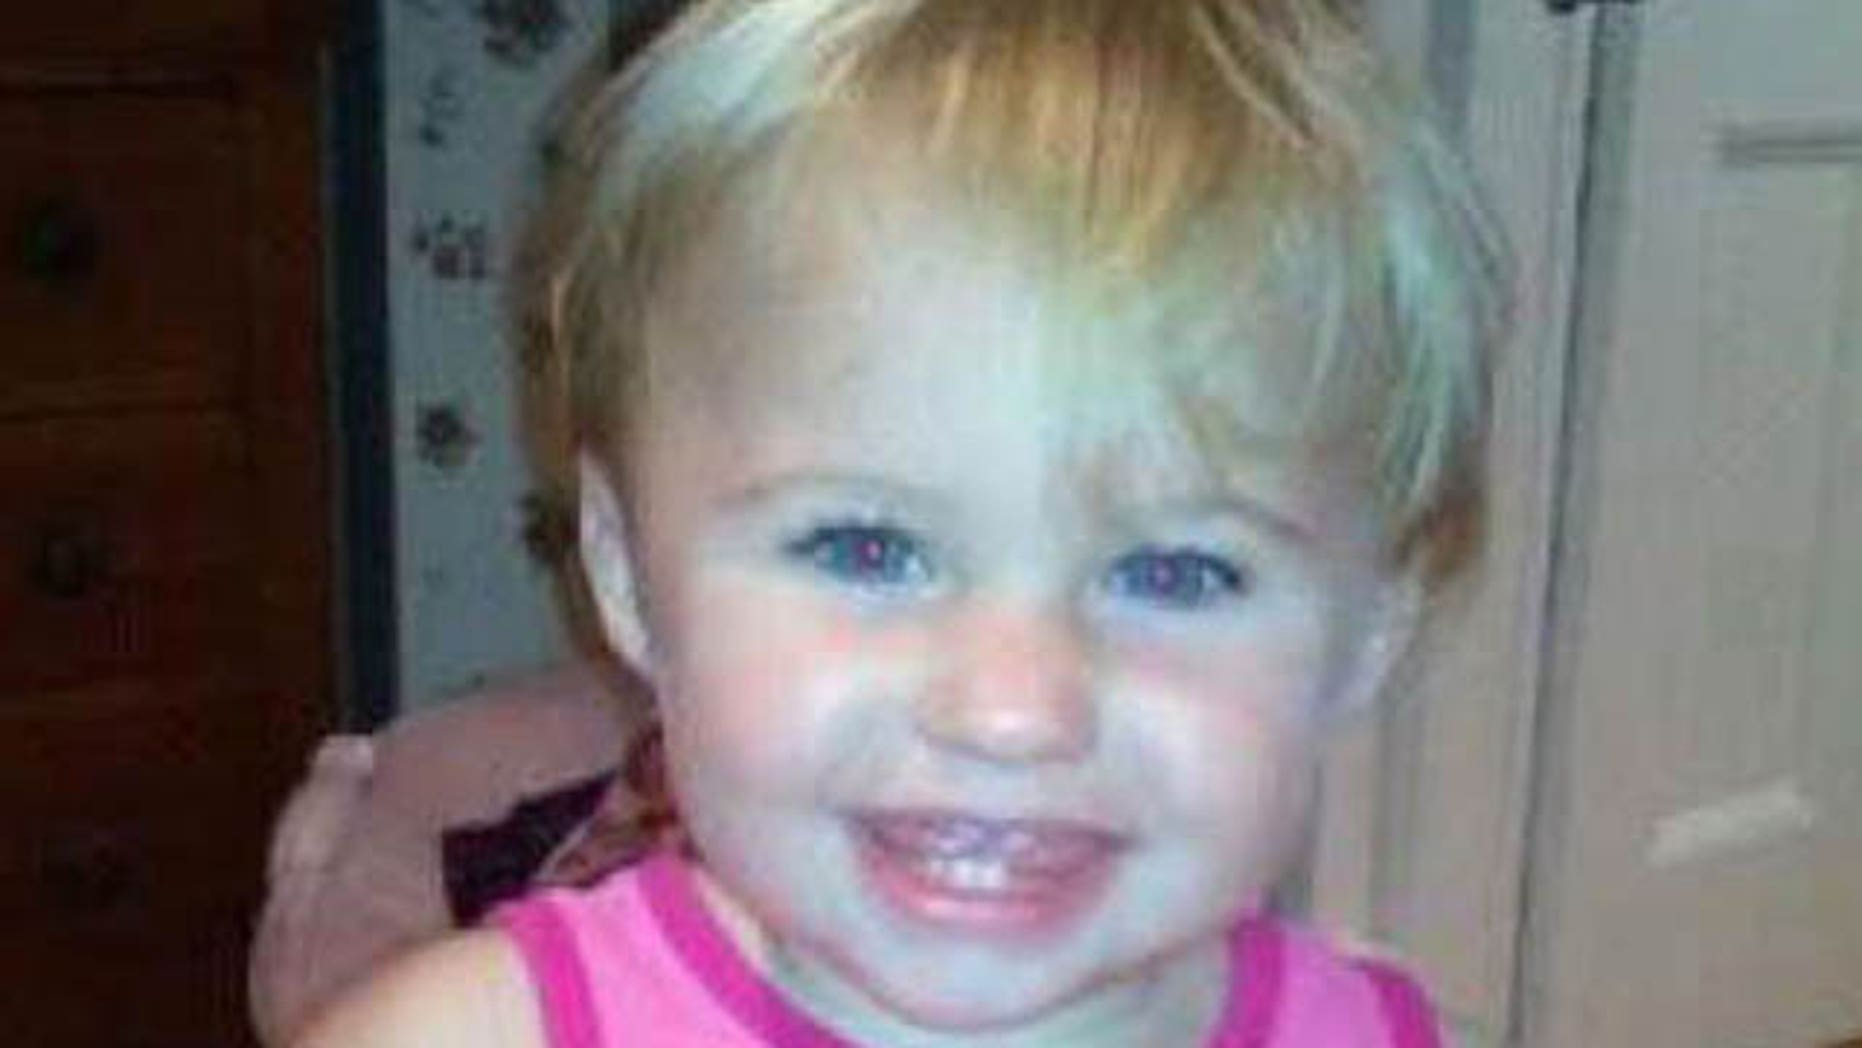 This undated photo shows missing toddler Ayla Reynolds.